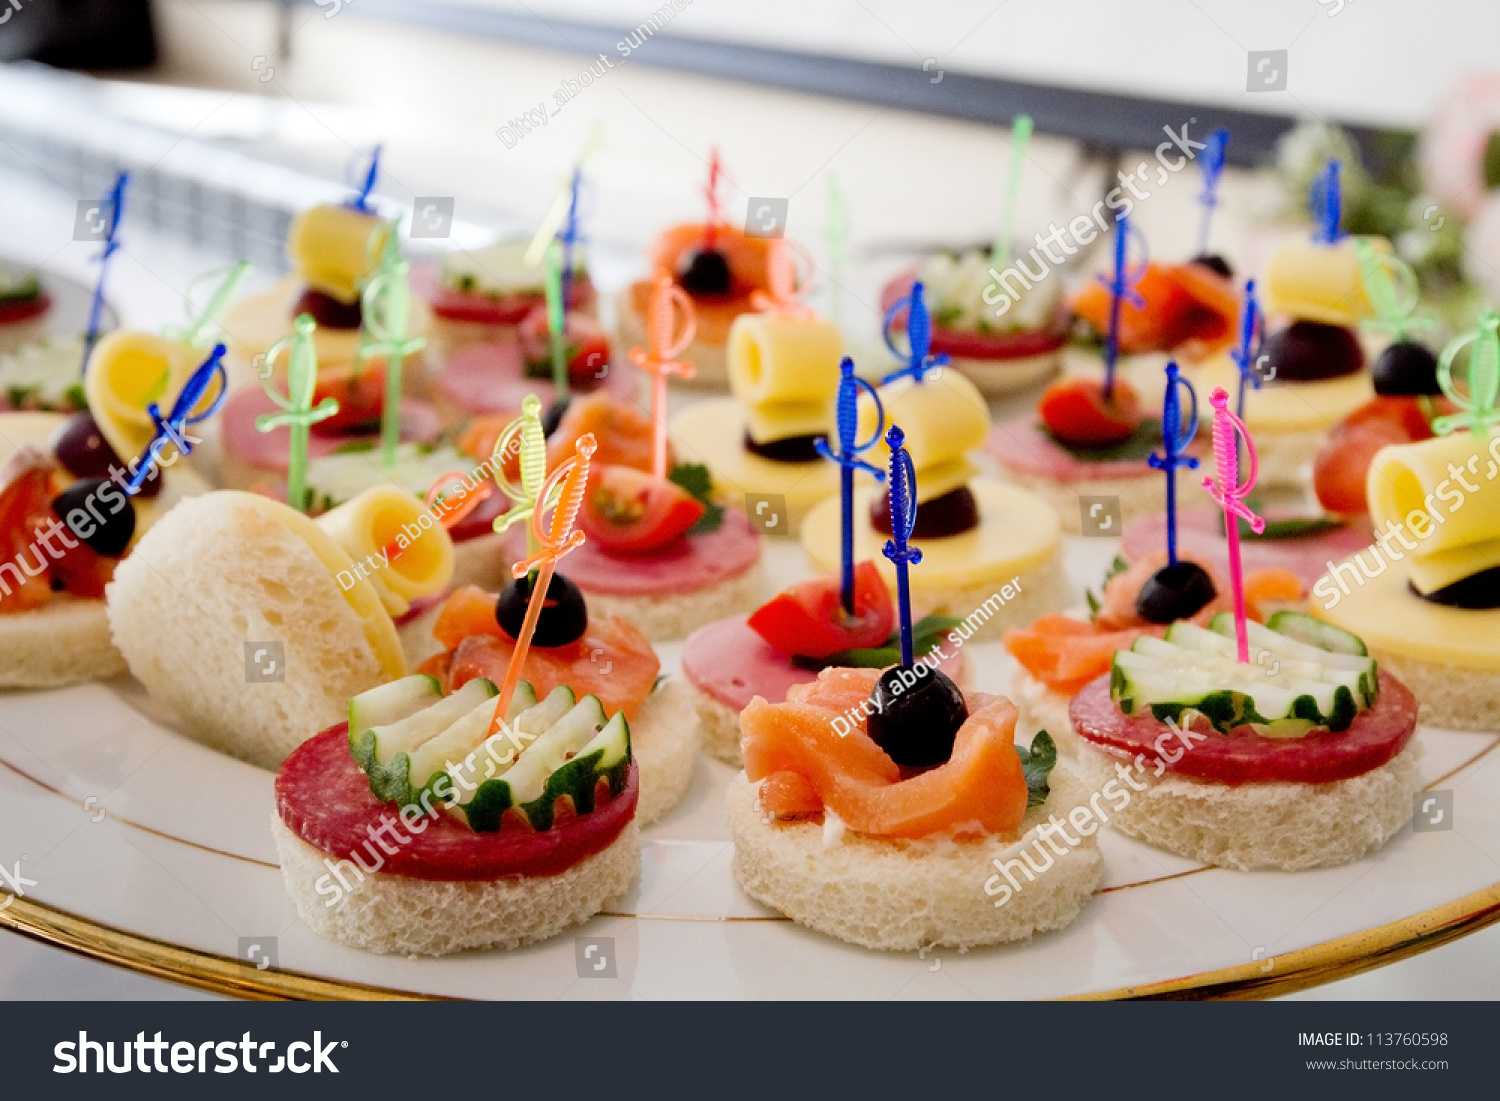 Canape on plate stock photo 113760598 shutterstock for What is a canape plate used for